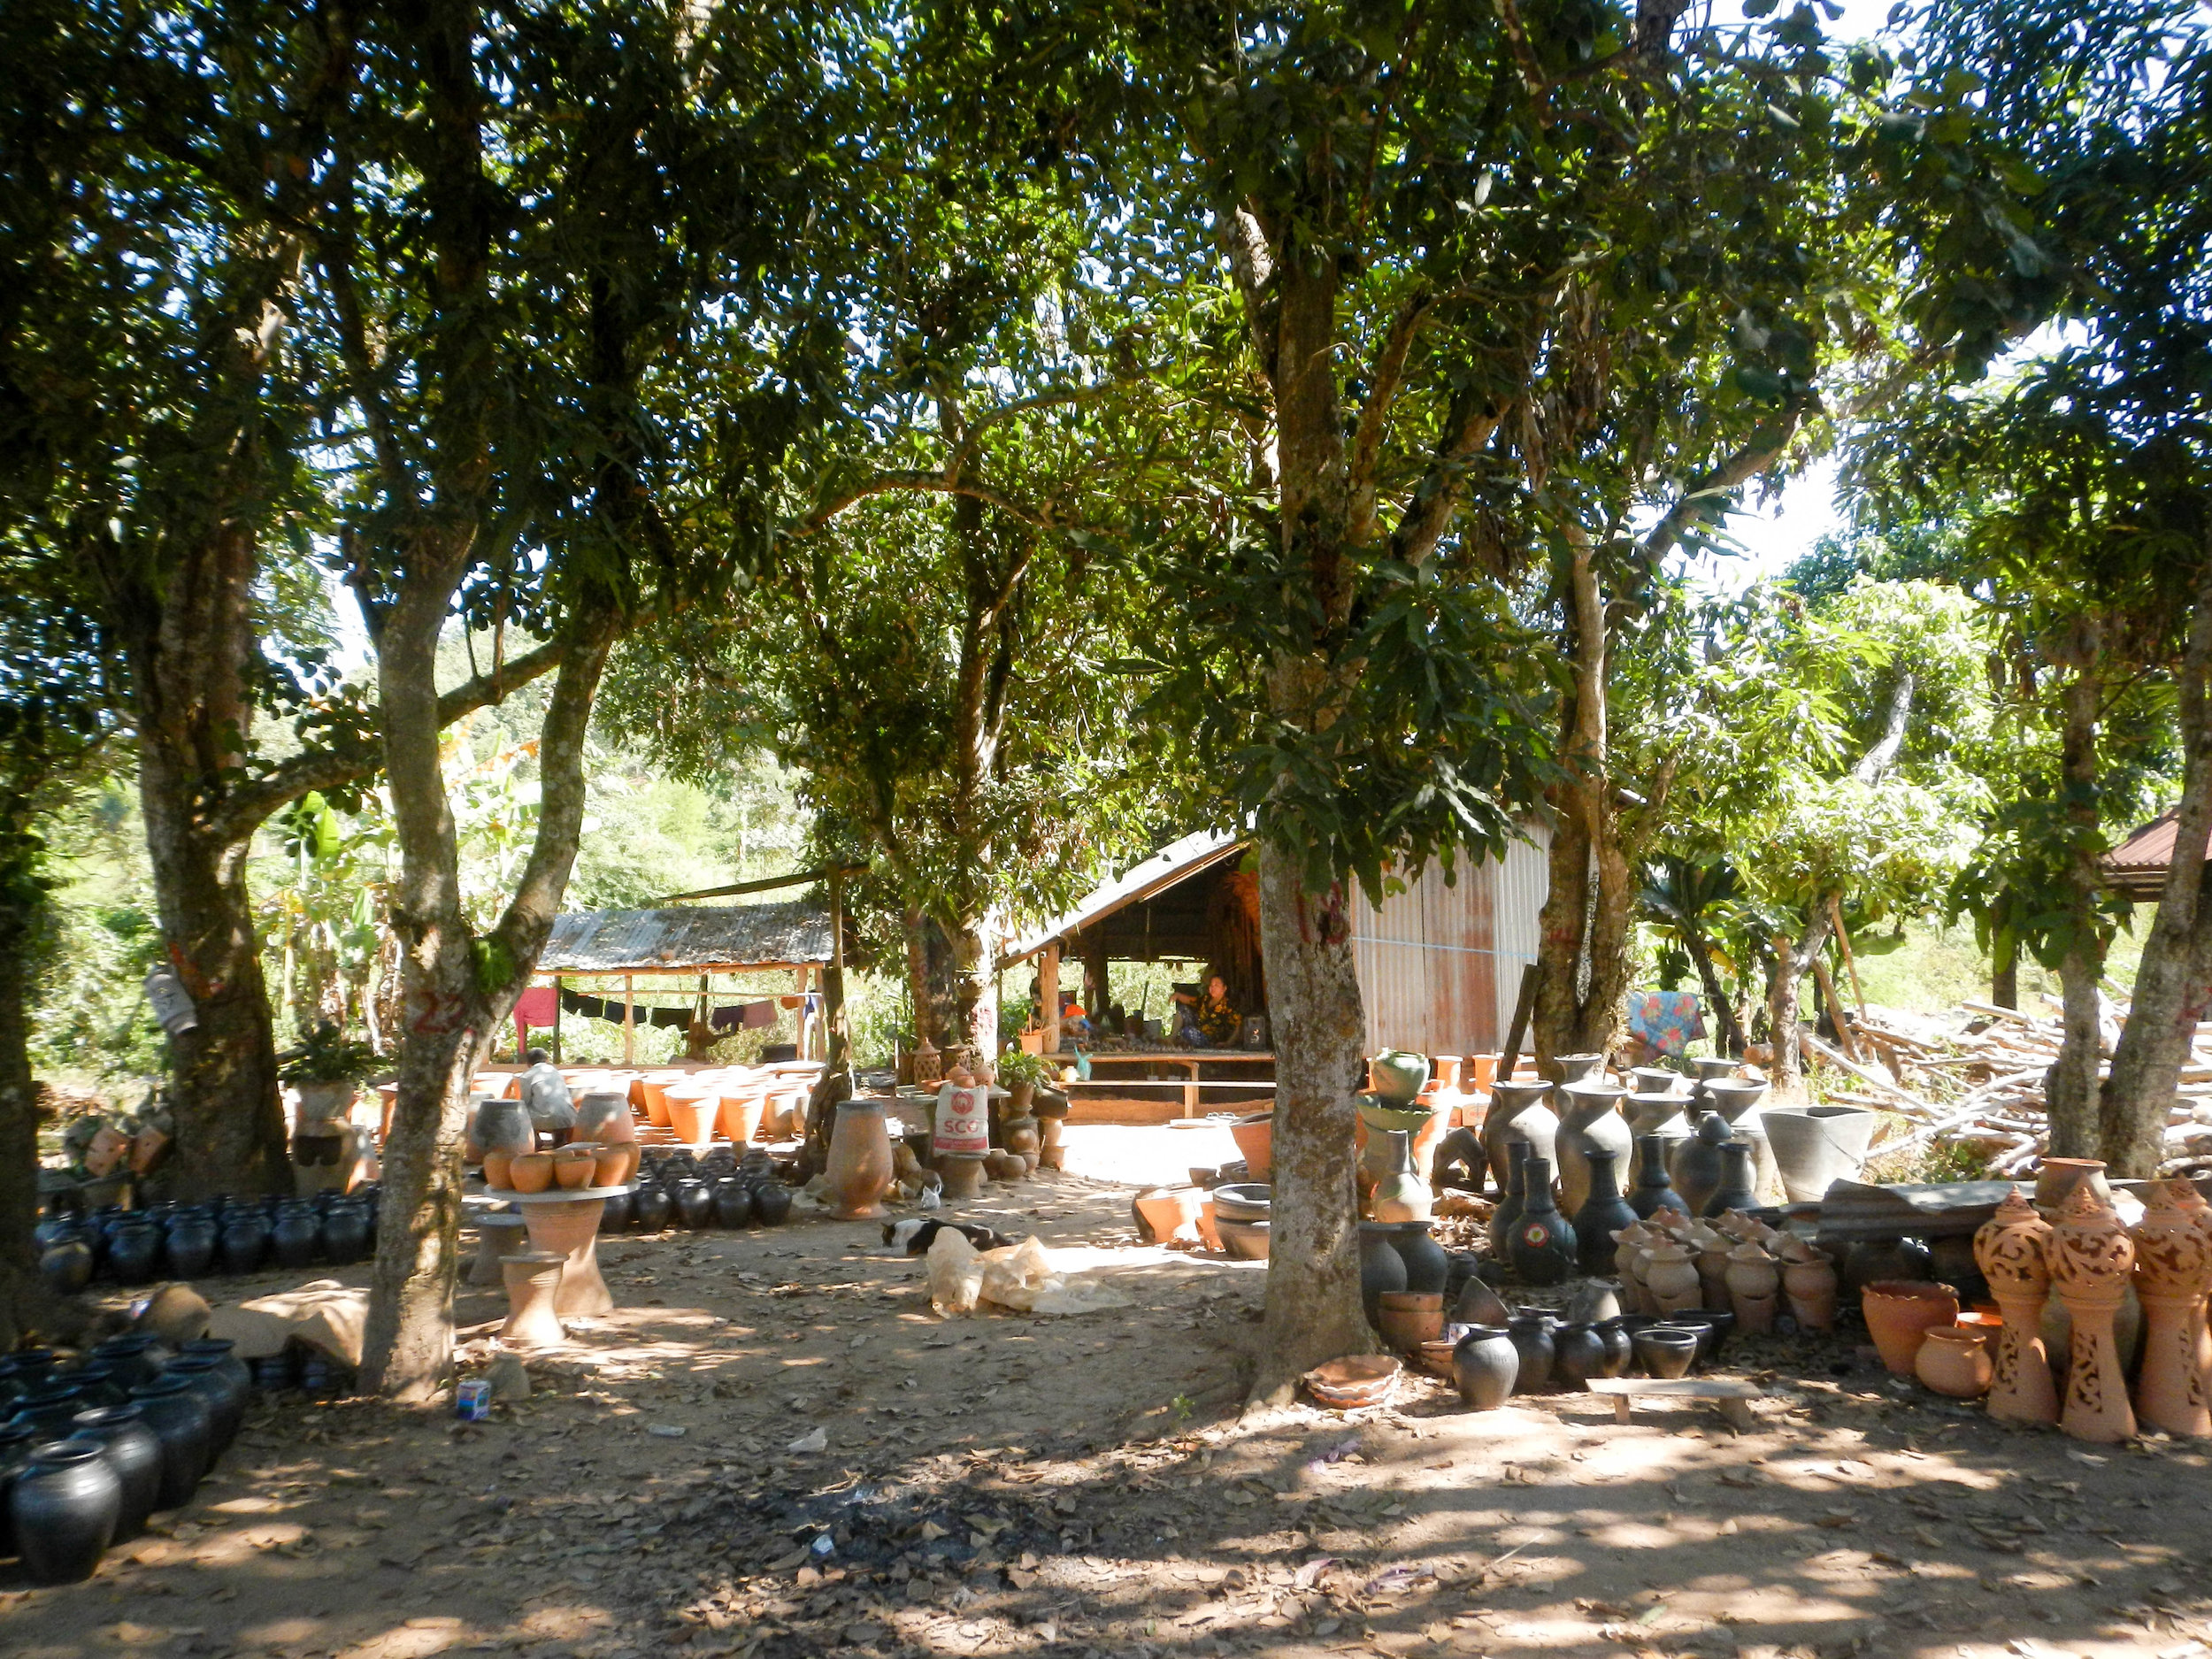 Pottery village, Ban Chaneneua, 3 Dec 2017.jpg